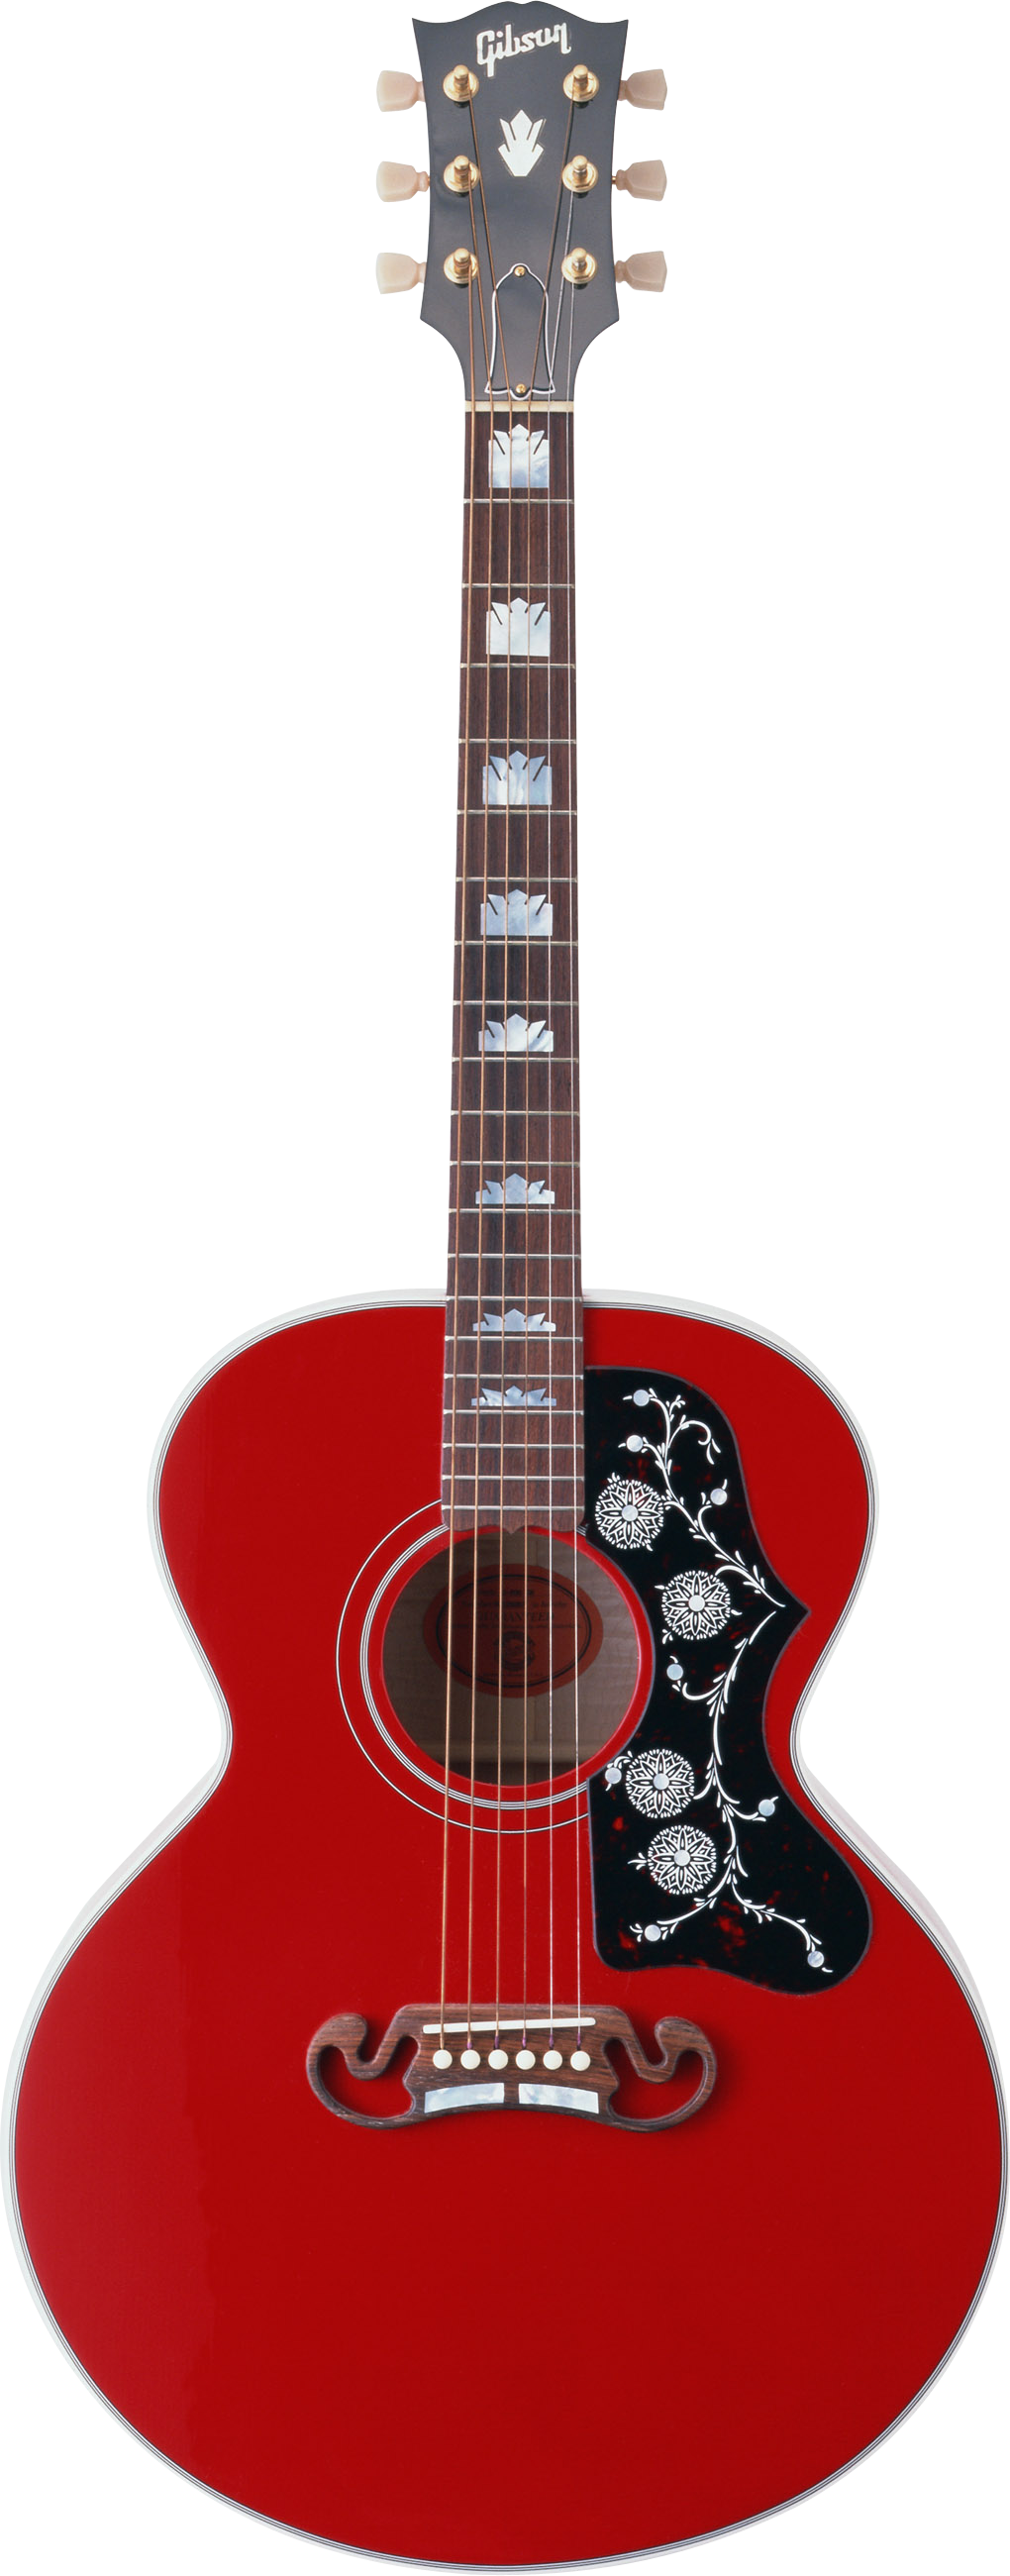 Clipart guitar red guitar. Png images free picture